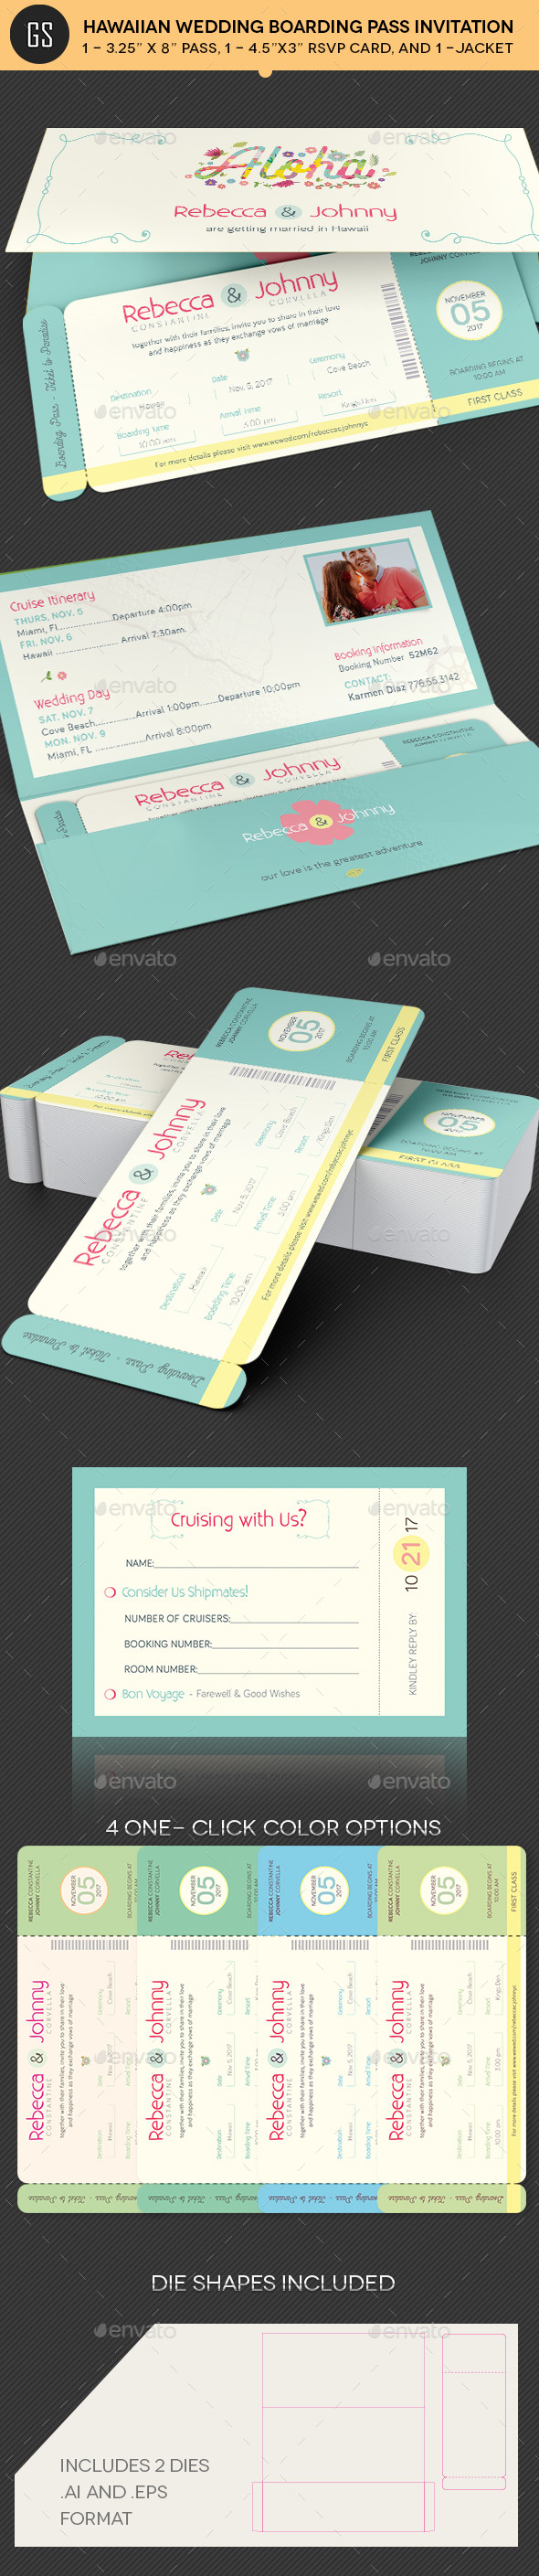 Hawaiian Wedding Boarding Pass Invitation Template